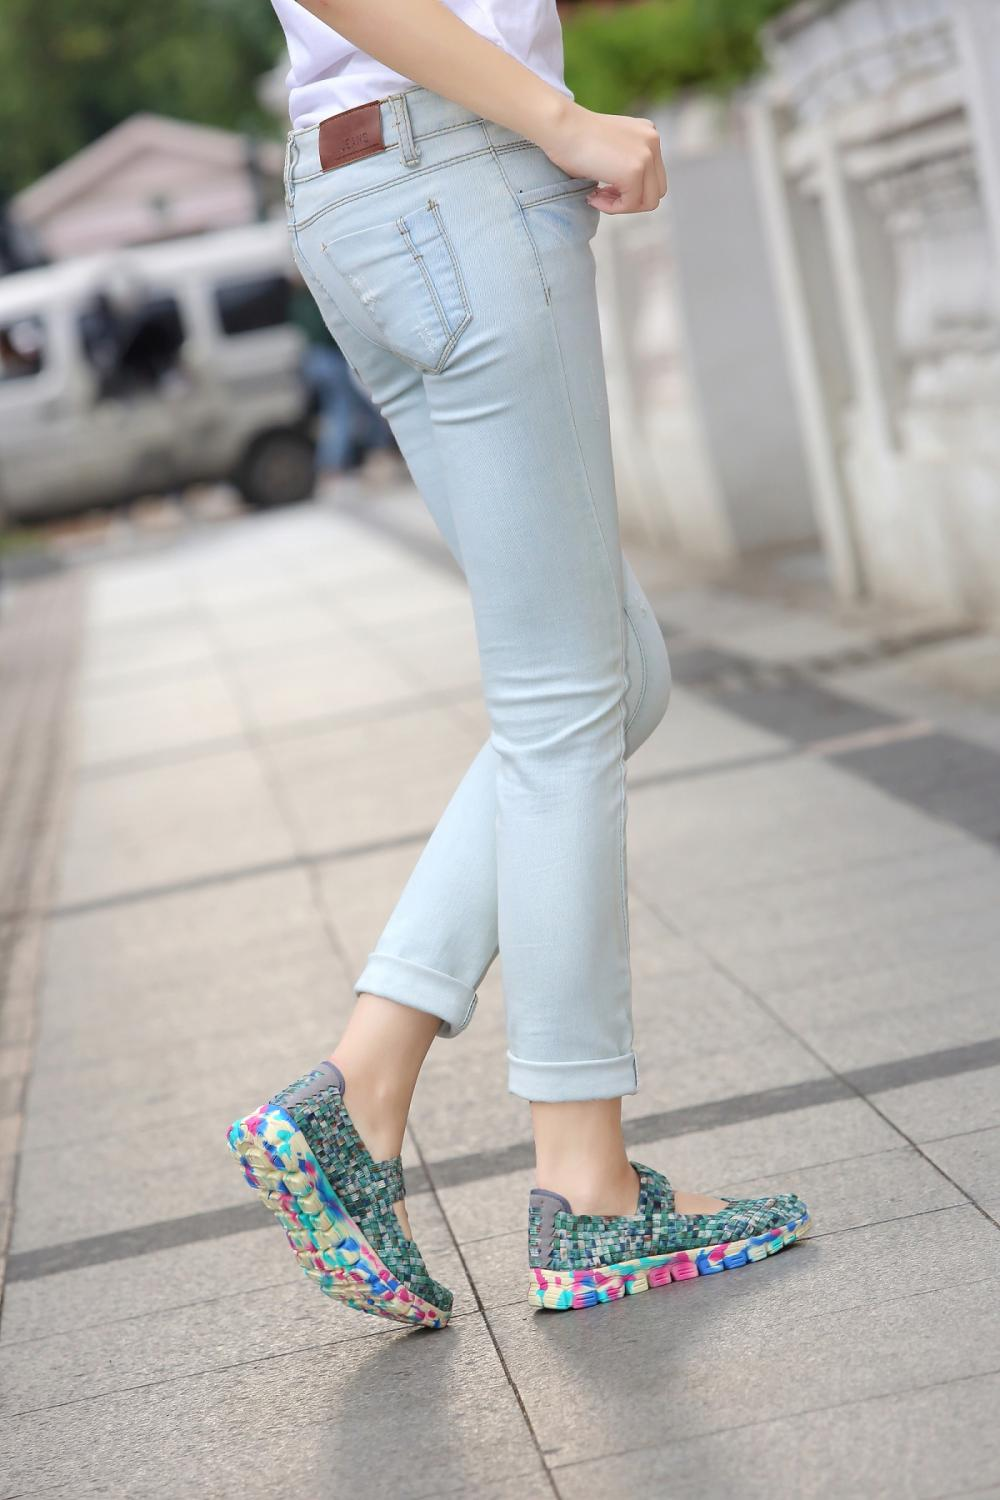 Casual Shoes With Flat Heels